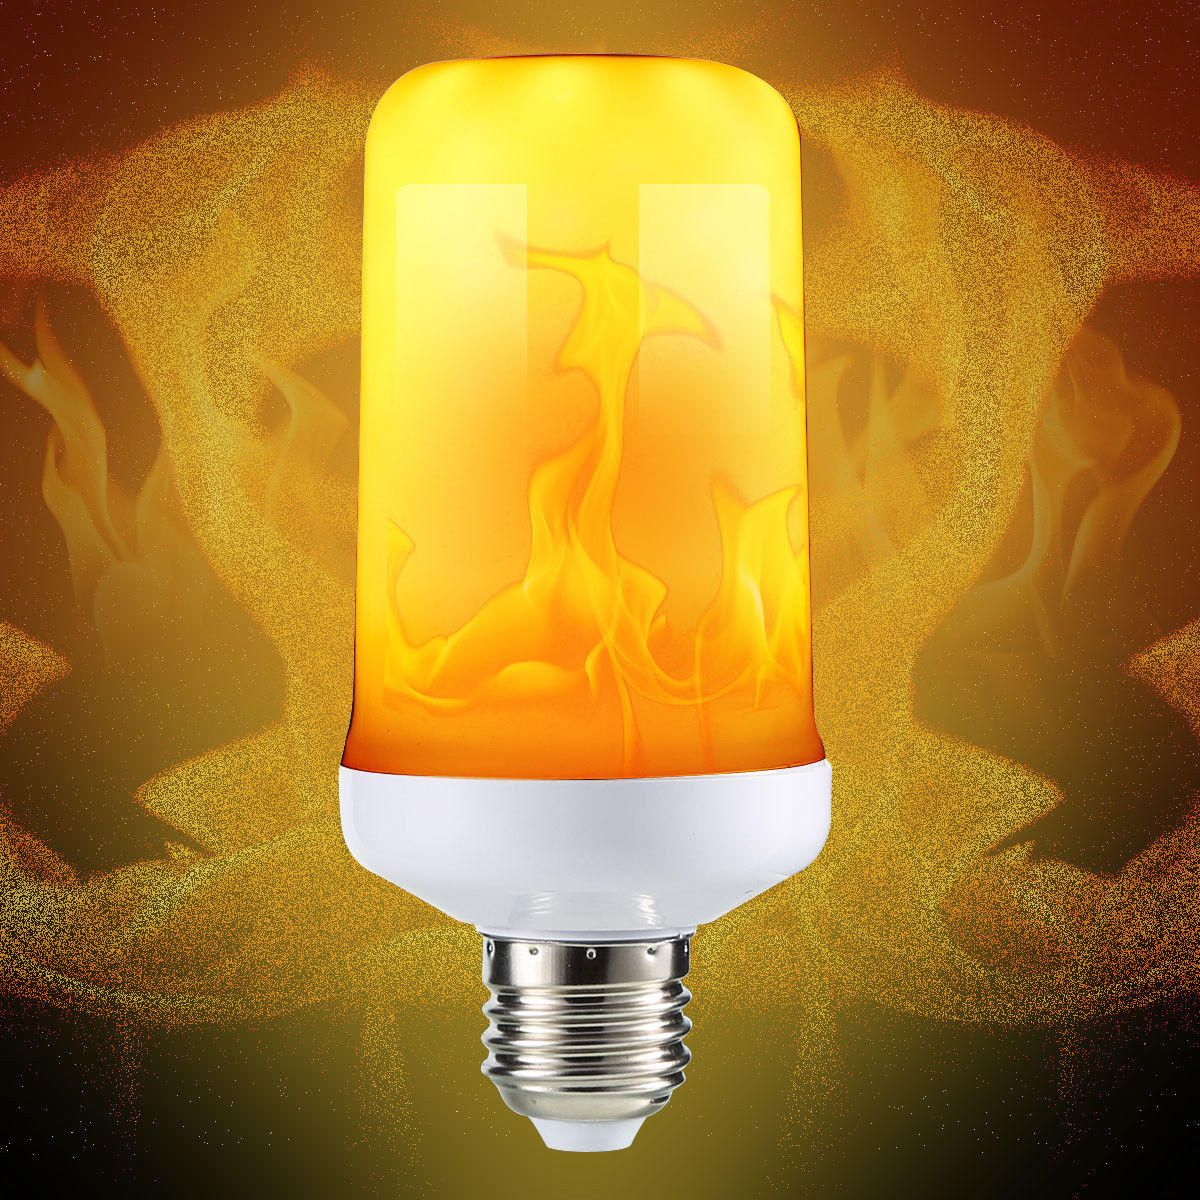 E27 4 Modes Smd2835 Led Flame Effect Flickering Emulation Fire Light Bulb Decoration Lamp Ac85 265v Decorative Light Bulbs Light Bulb Candle Bulb